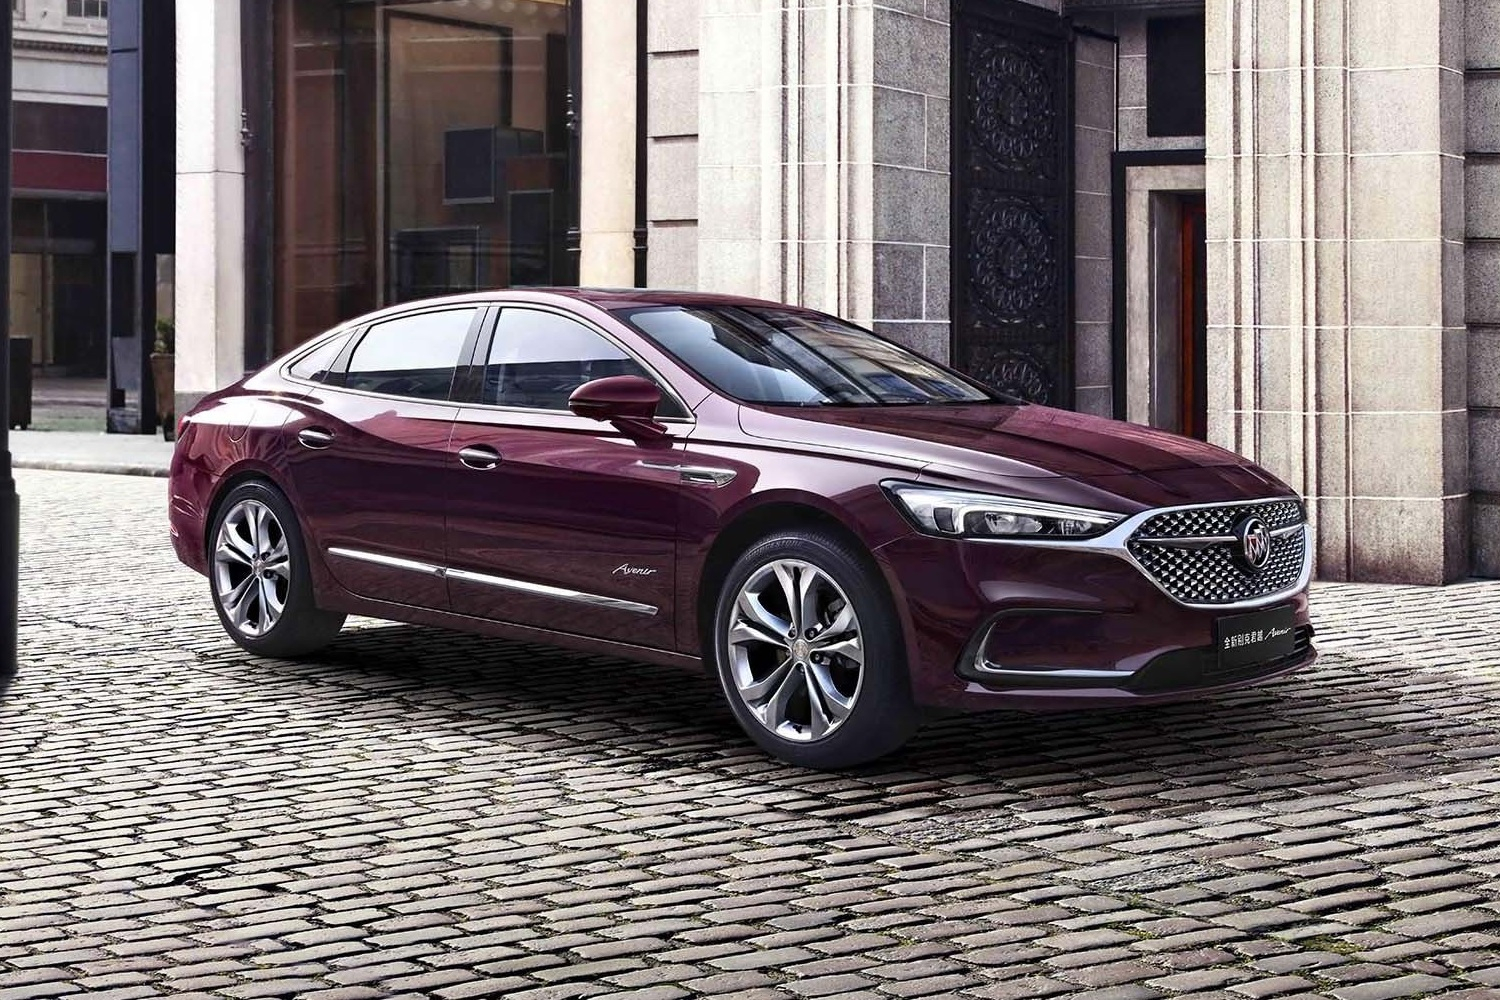 2020 Buick Lacrosse Info, Specs, Wiki | Gm Authority 2021 Buick Regal Brochure, Build, Models